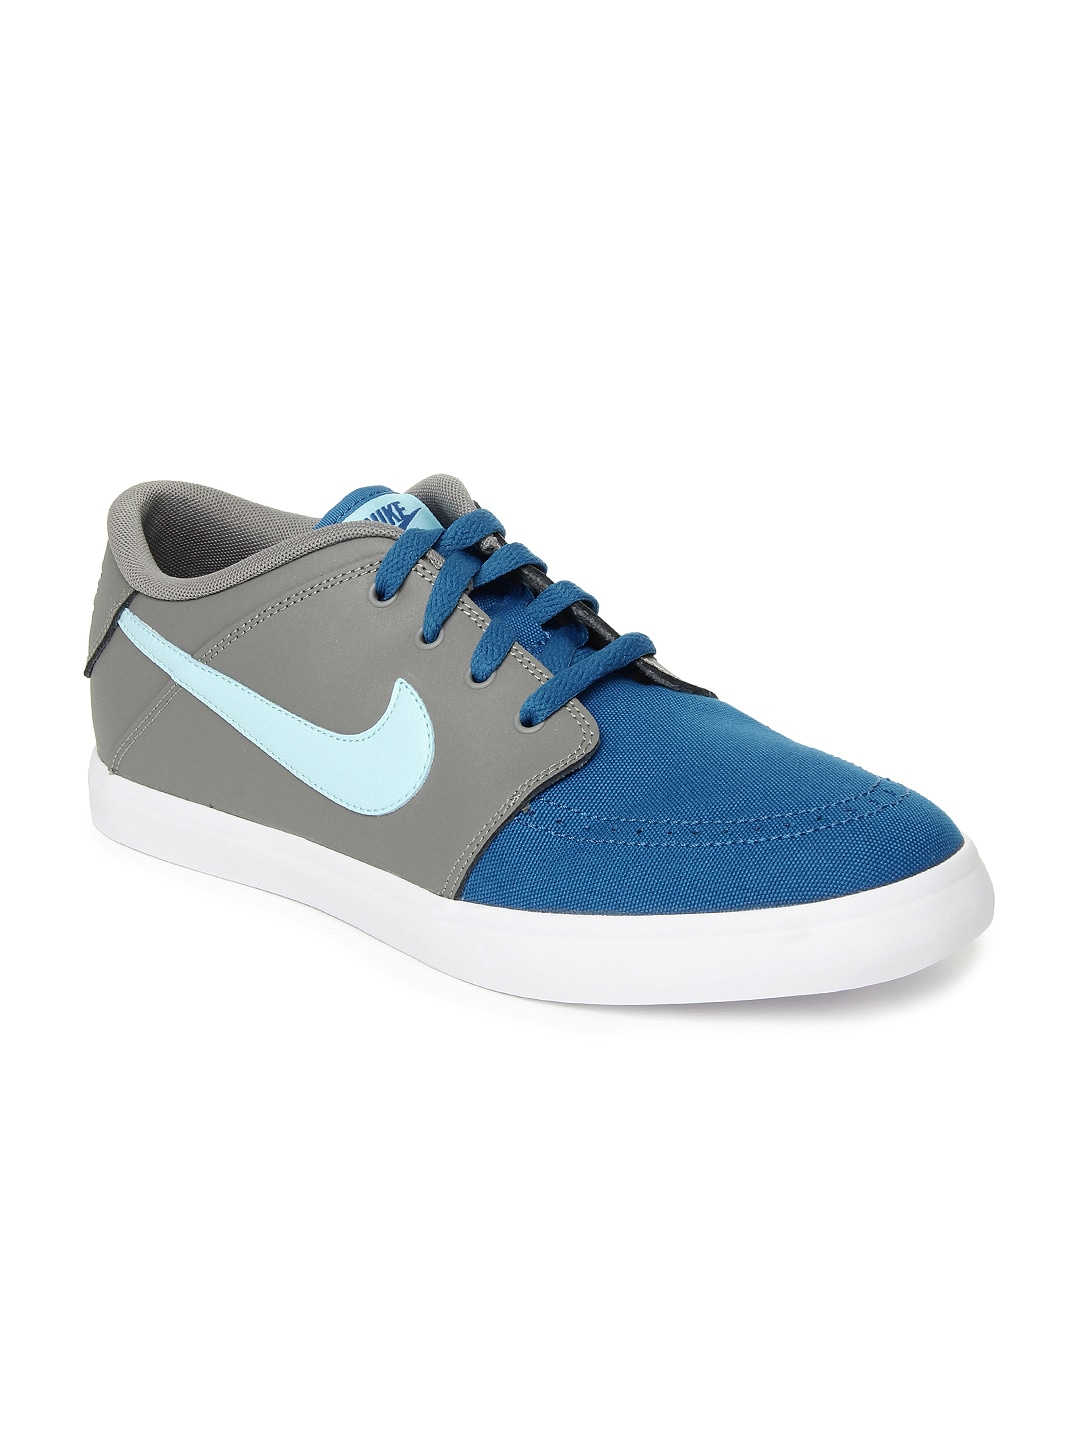 nike grey and blue suketo 2 leather casual shoes